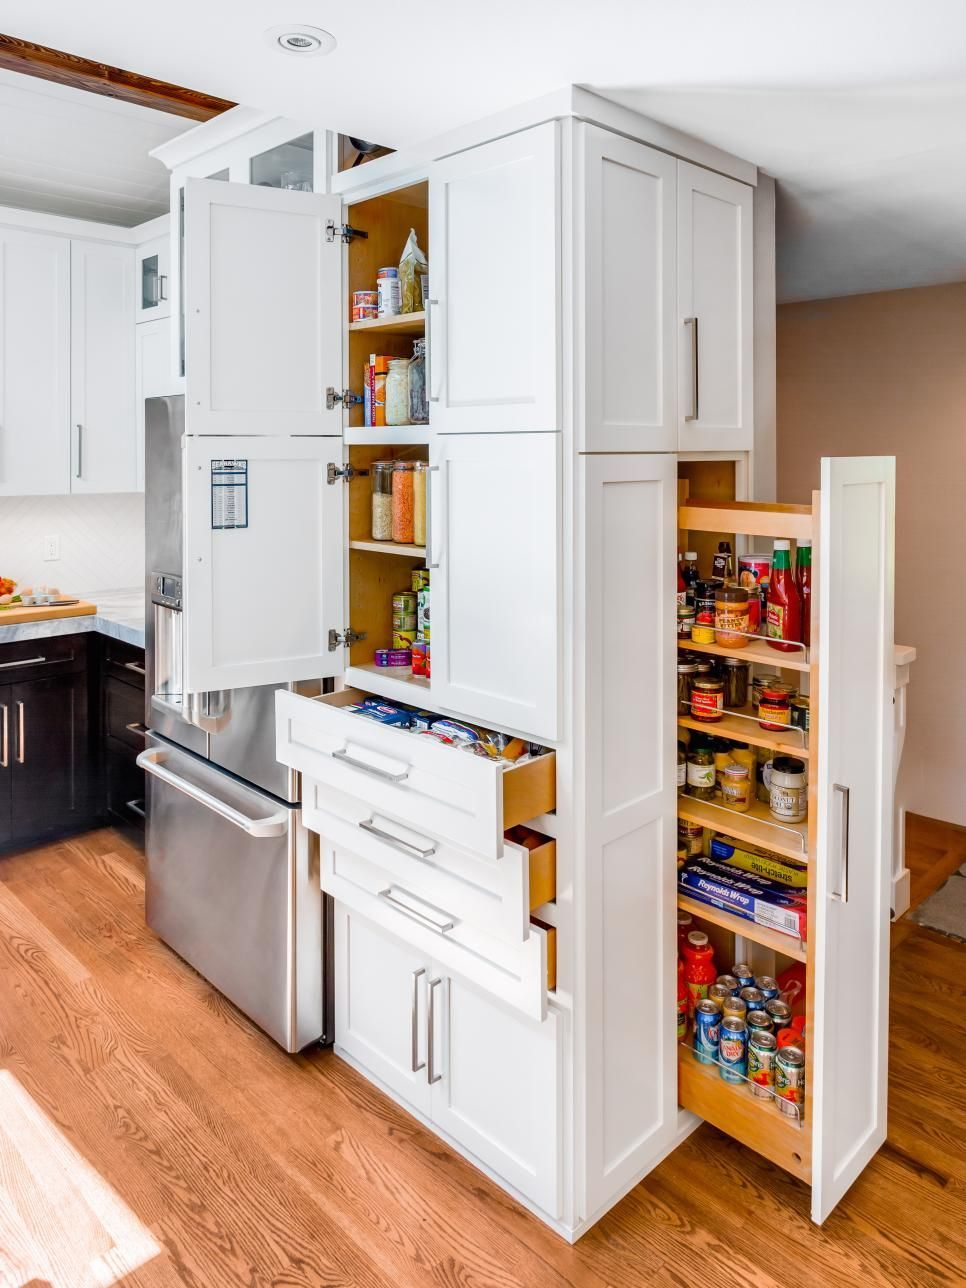 Done Digging Through Drawers For That Particular Whisk Or Picking Through Five Deep Row Kitchen Design Open Transitional Kitchen Design Clever Kitchen Storage